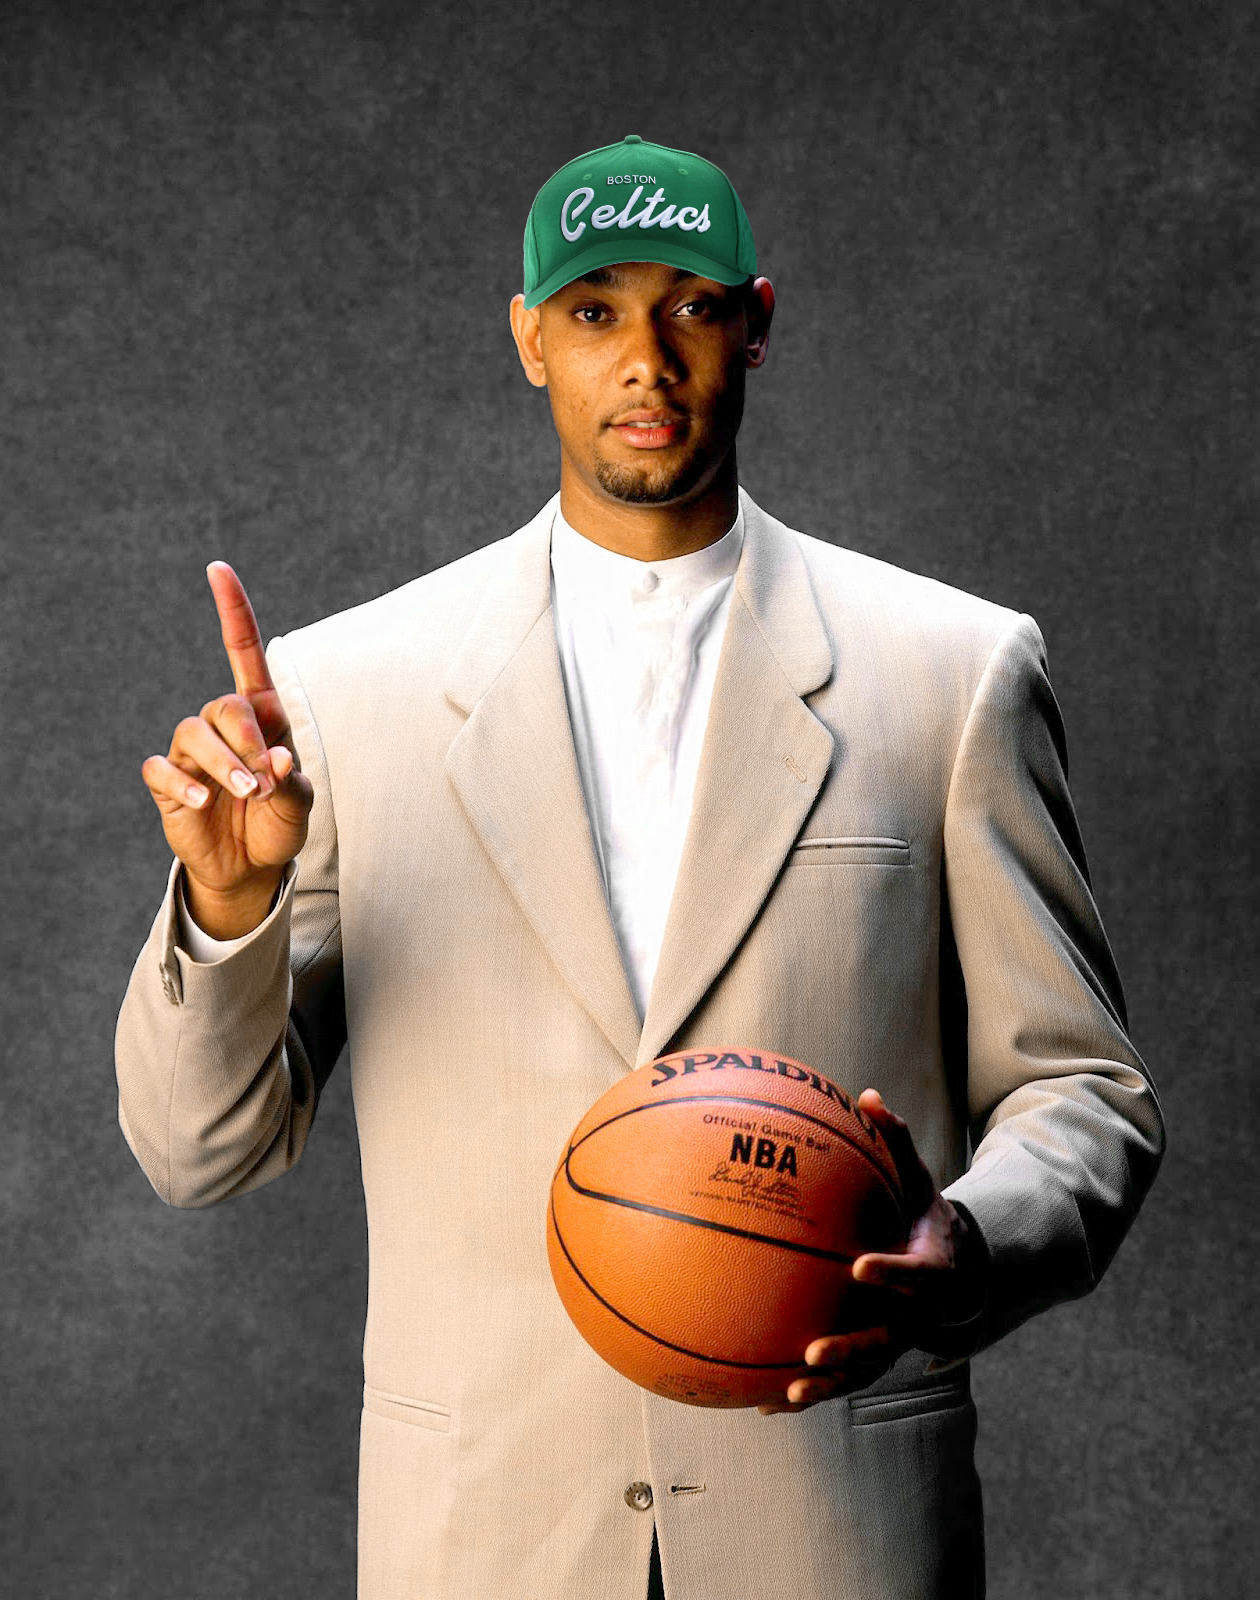 What if the Celtics won the lottery in 1997?